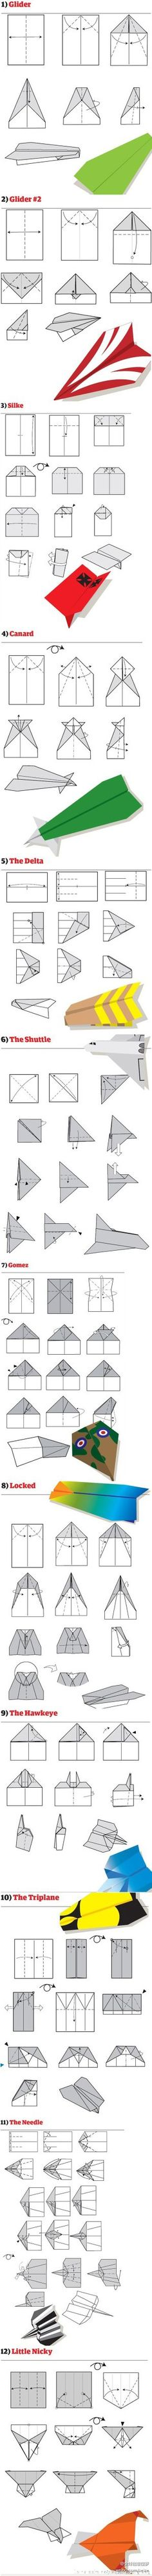 how to make paper airplane jp and audrey pinterest airplanes